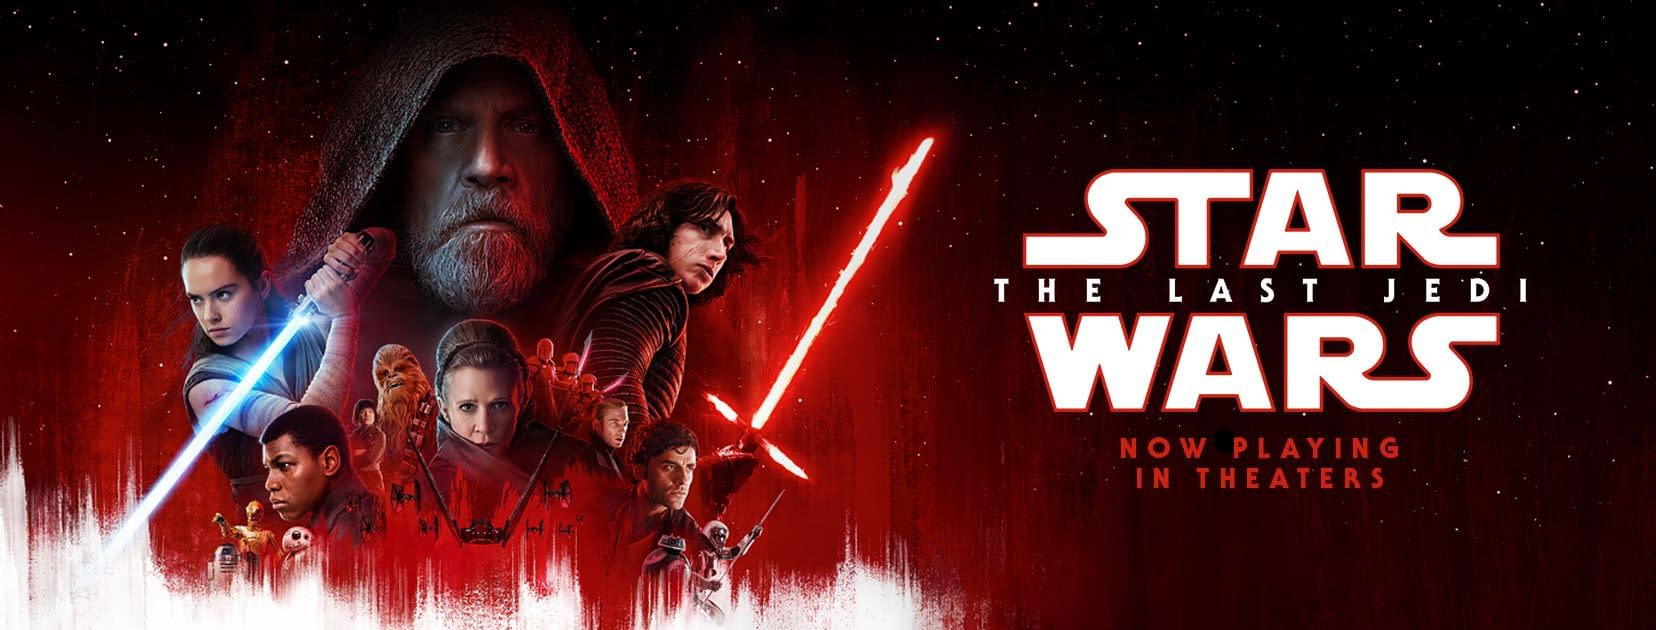 Facebook User Claims To Have Manipulated The Last Jedi Audience Score